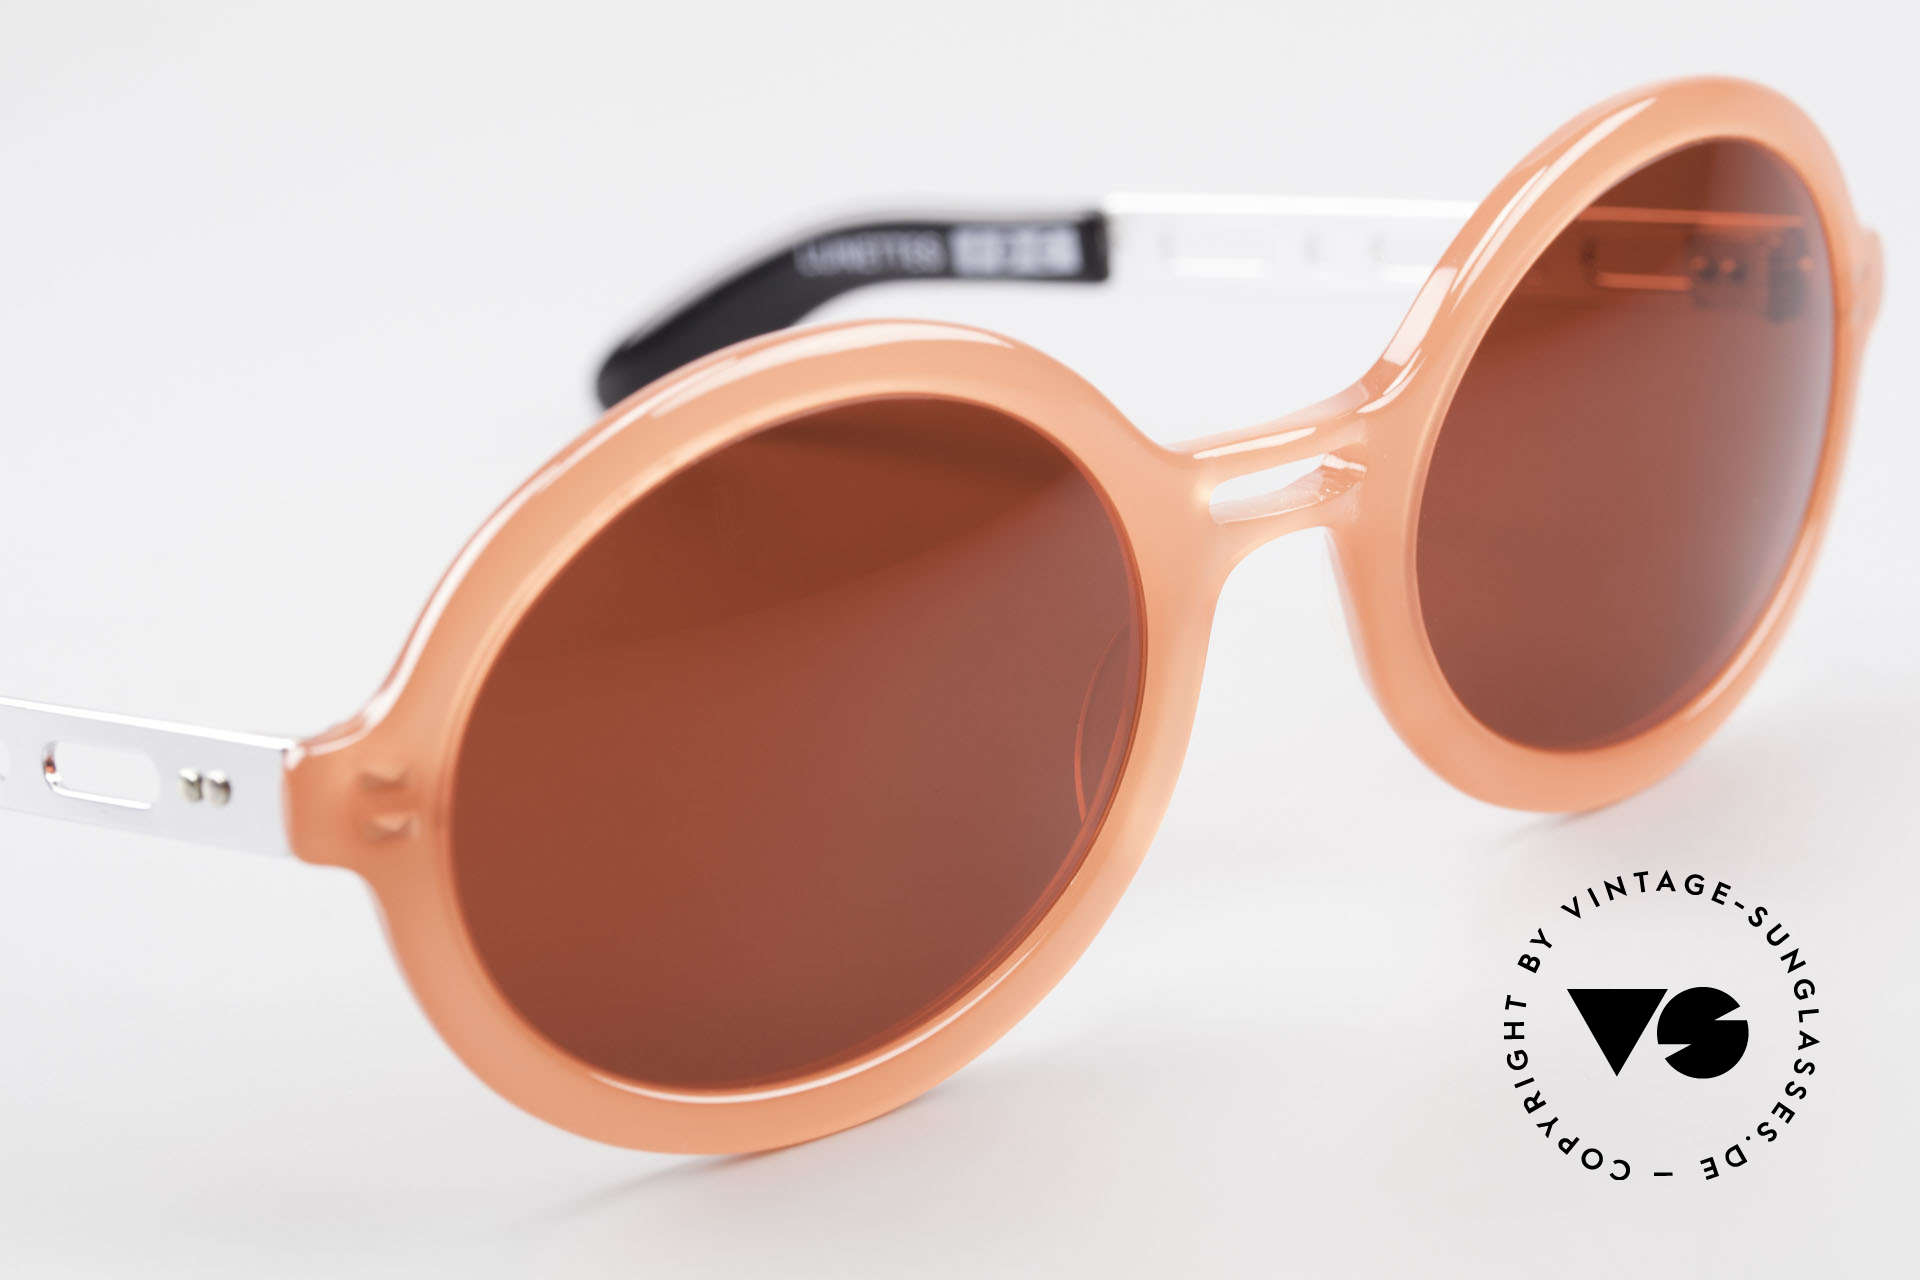 IDC I067 Fun Sunglasses Steampunk 90s, NO retro specs / shades; an app. 25 years old original, Made for Women